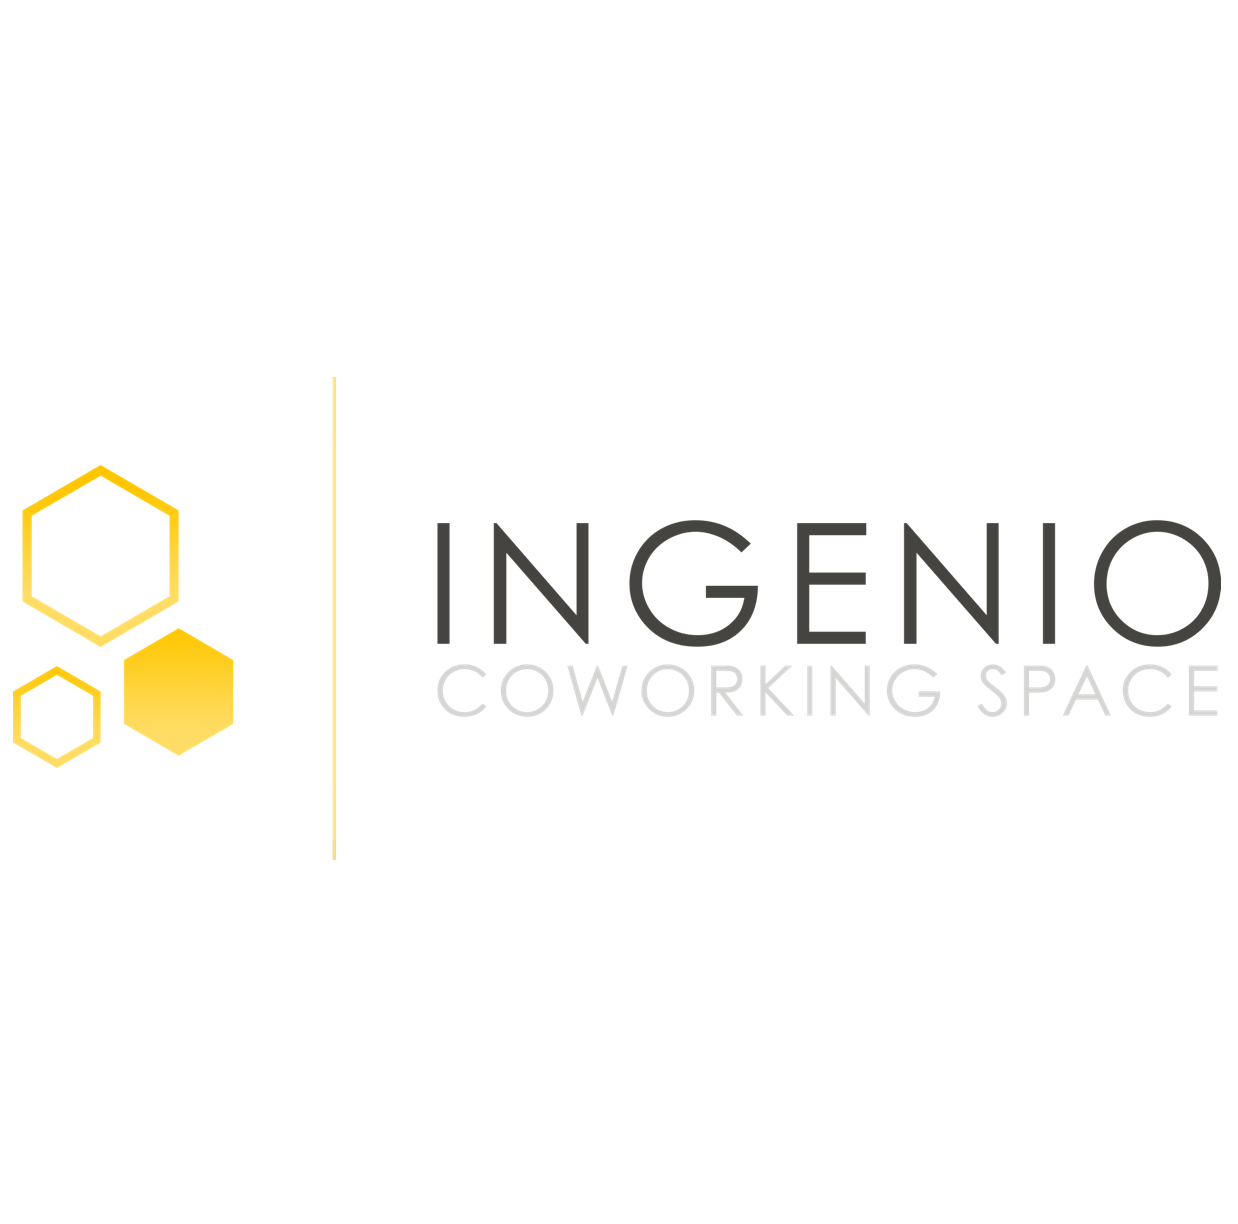 Ingenio Coworking Space